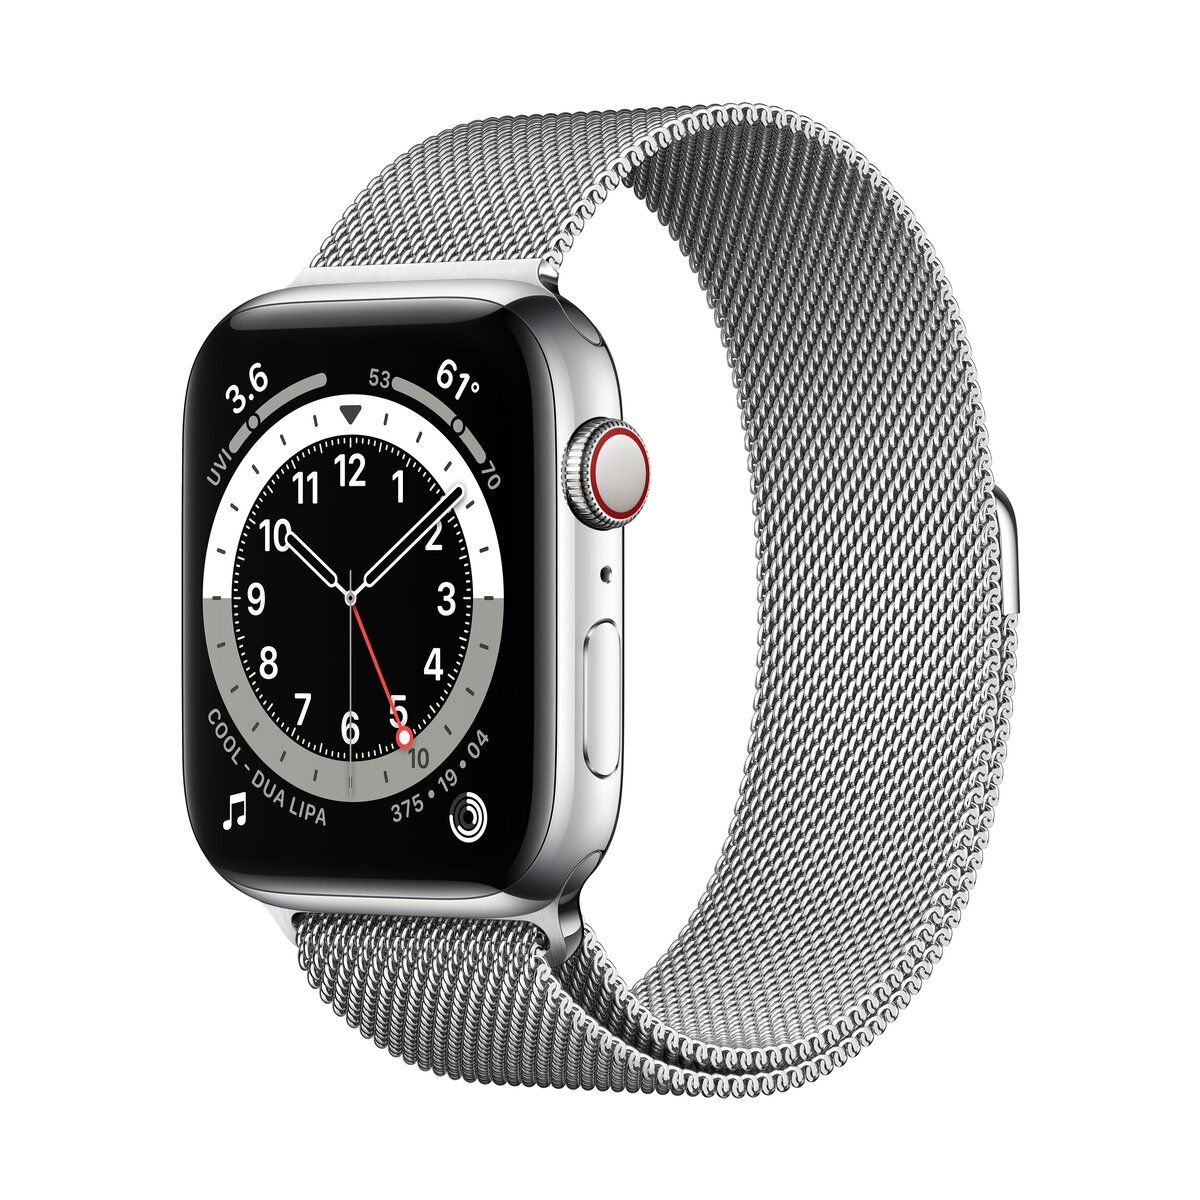 Apple Watch (Series 6) GPS+Cellular 44 mm-es ezüstszínű rozsdamentesacél tok, milánói szíj